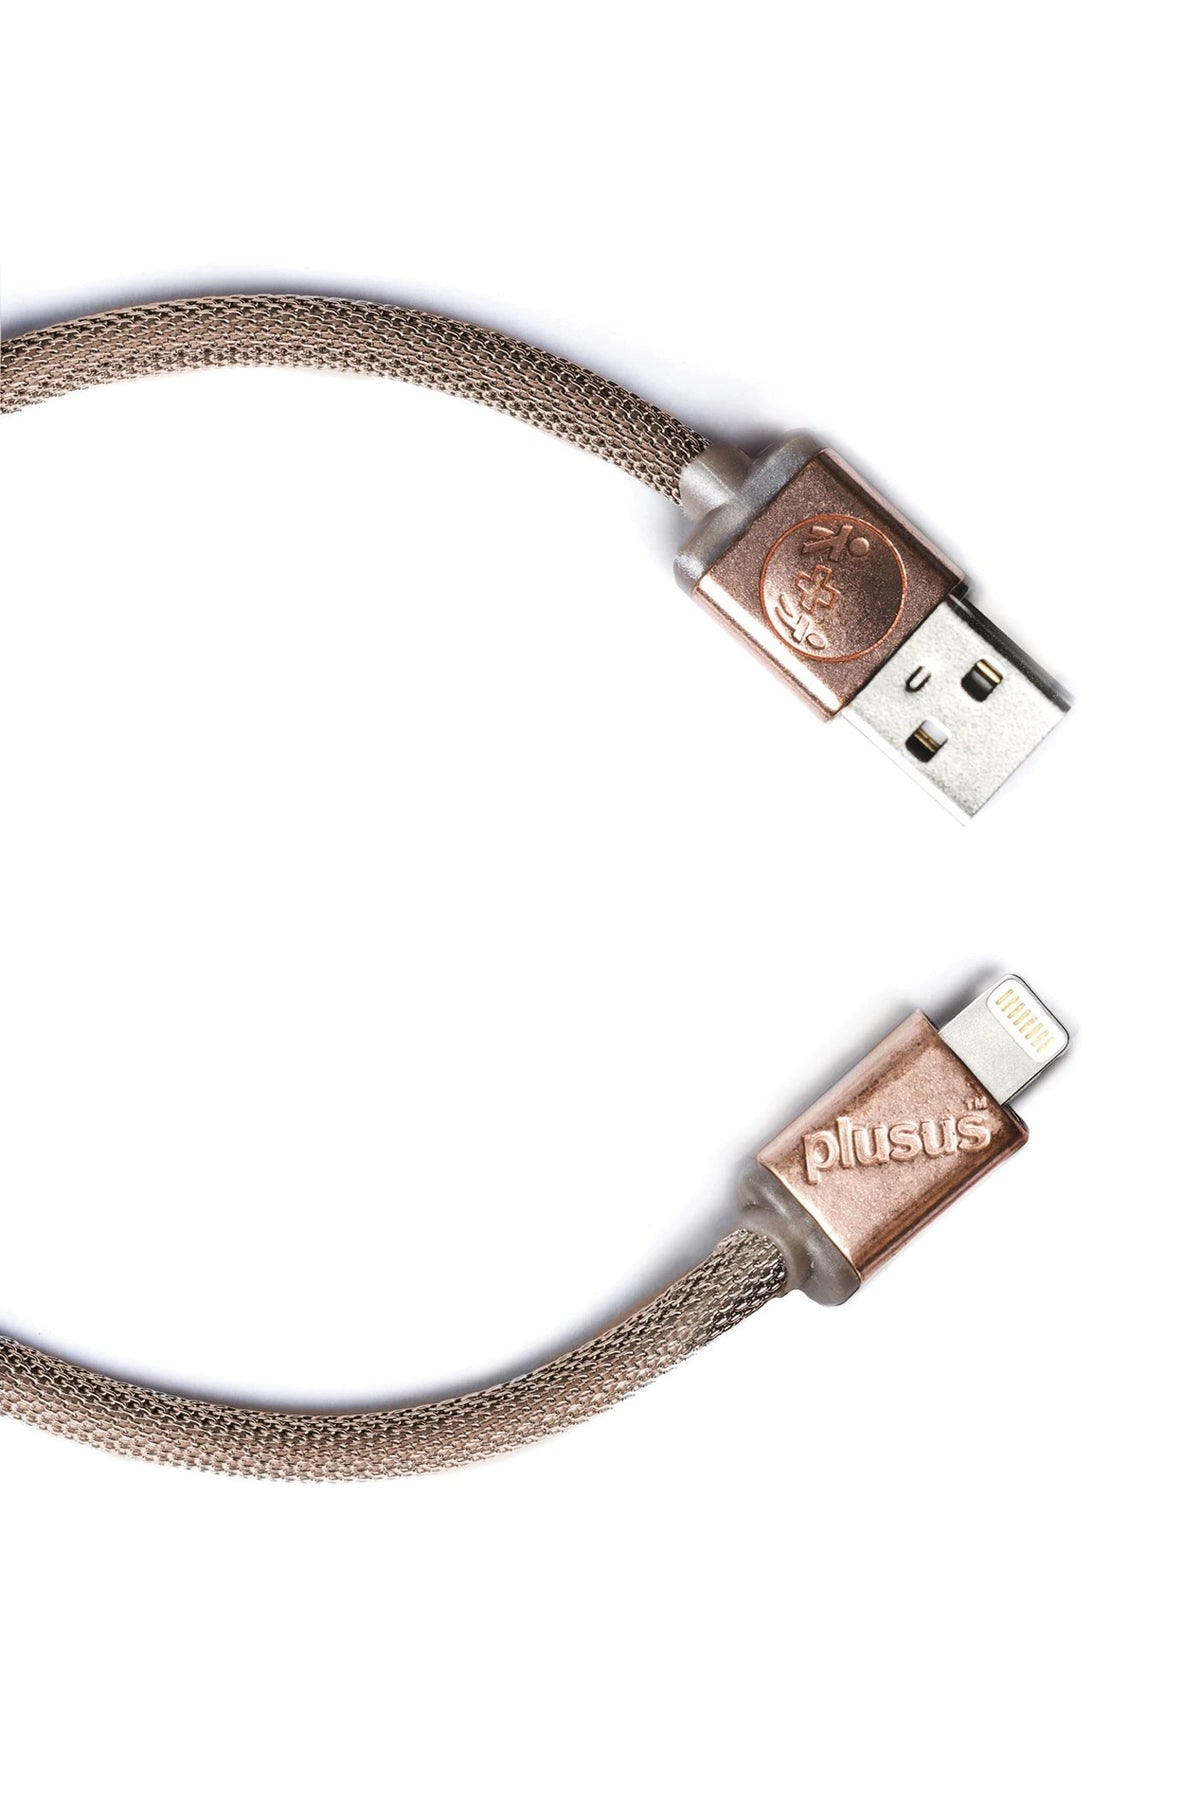 Lifestar Designer Cable - Gold Mesh finish- Apple MFi certified Lightning